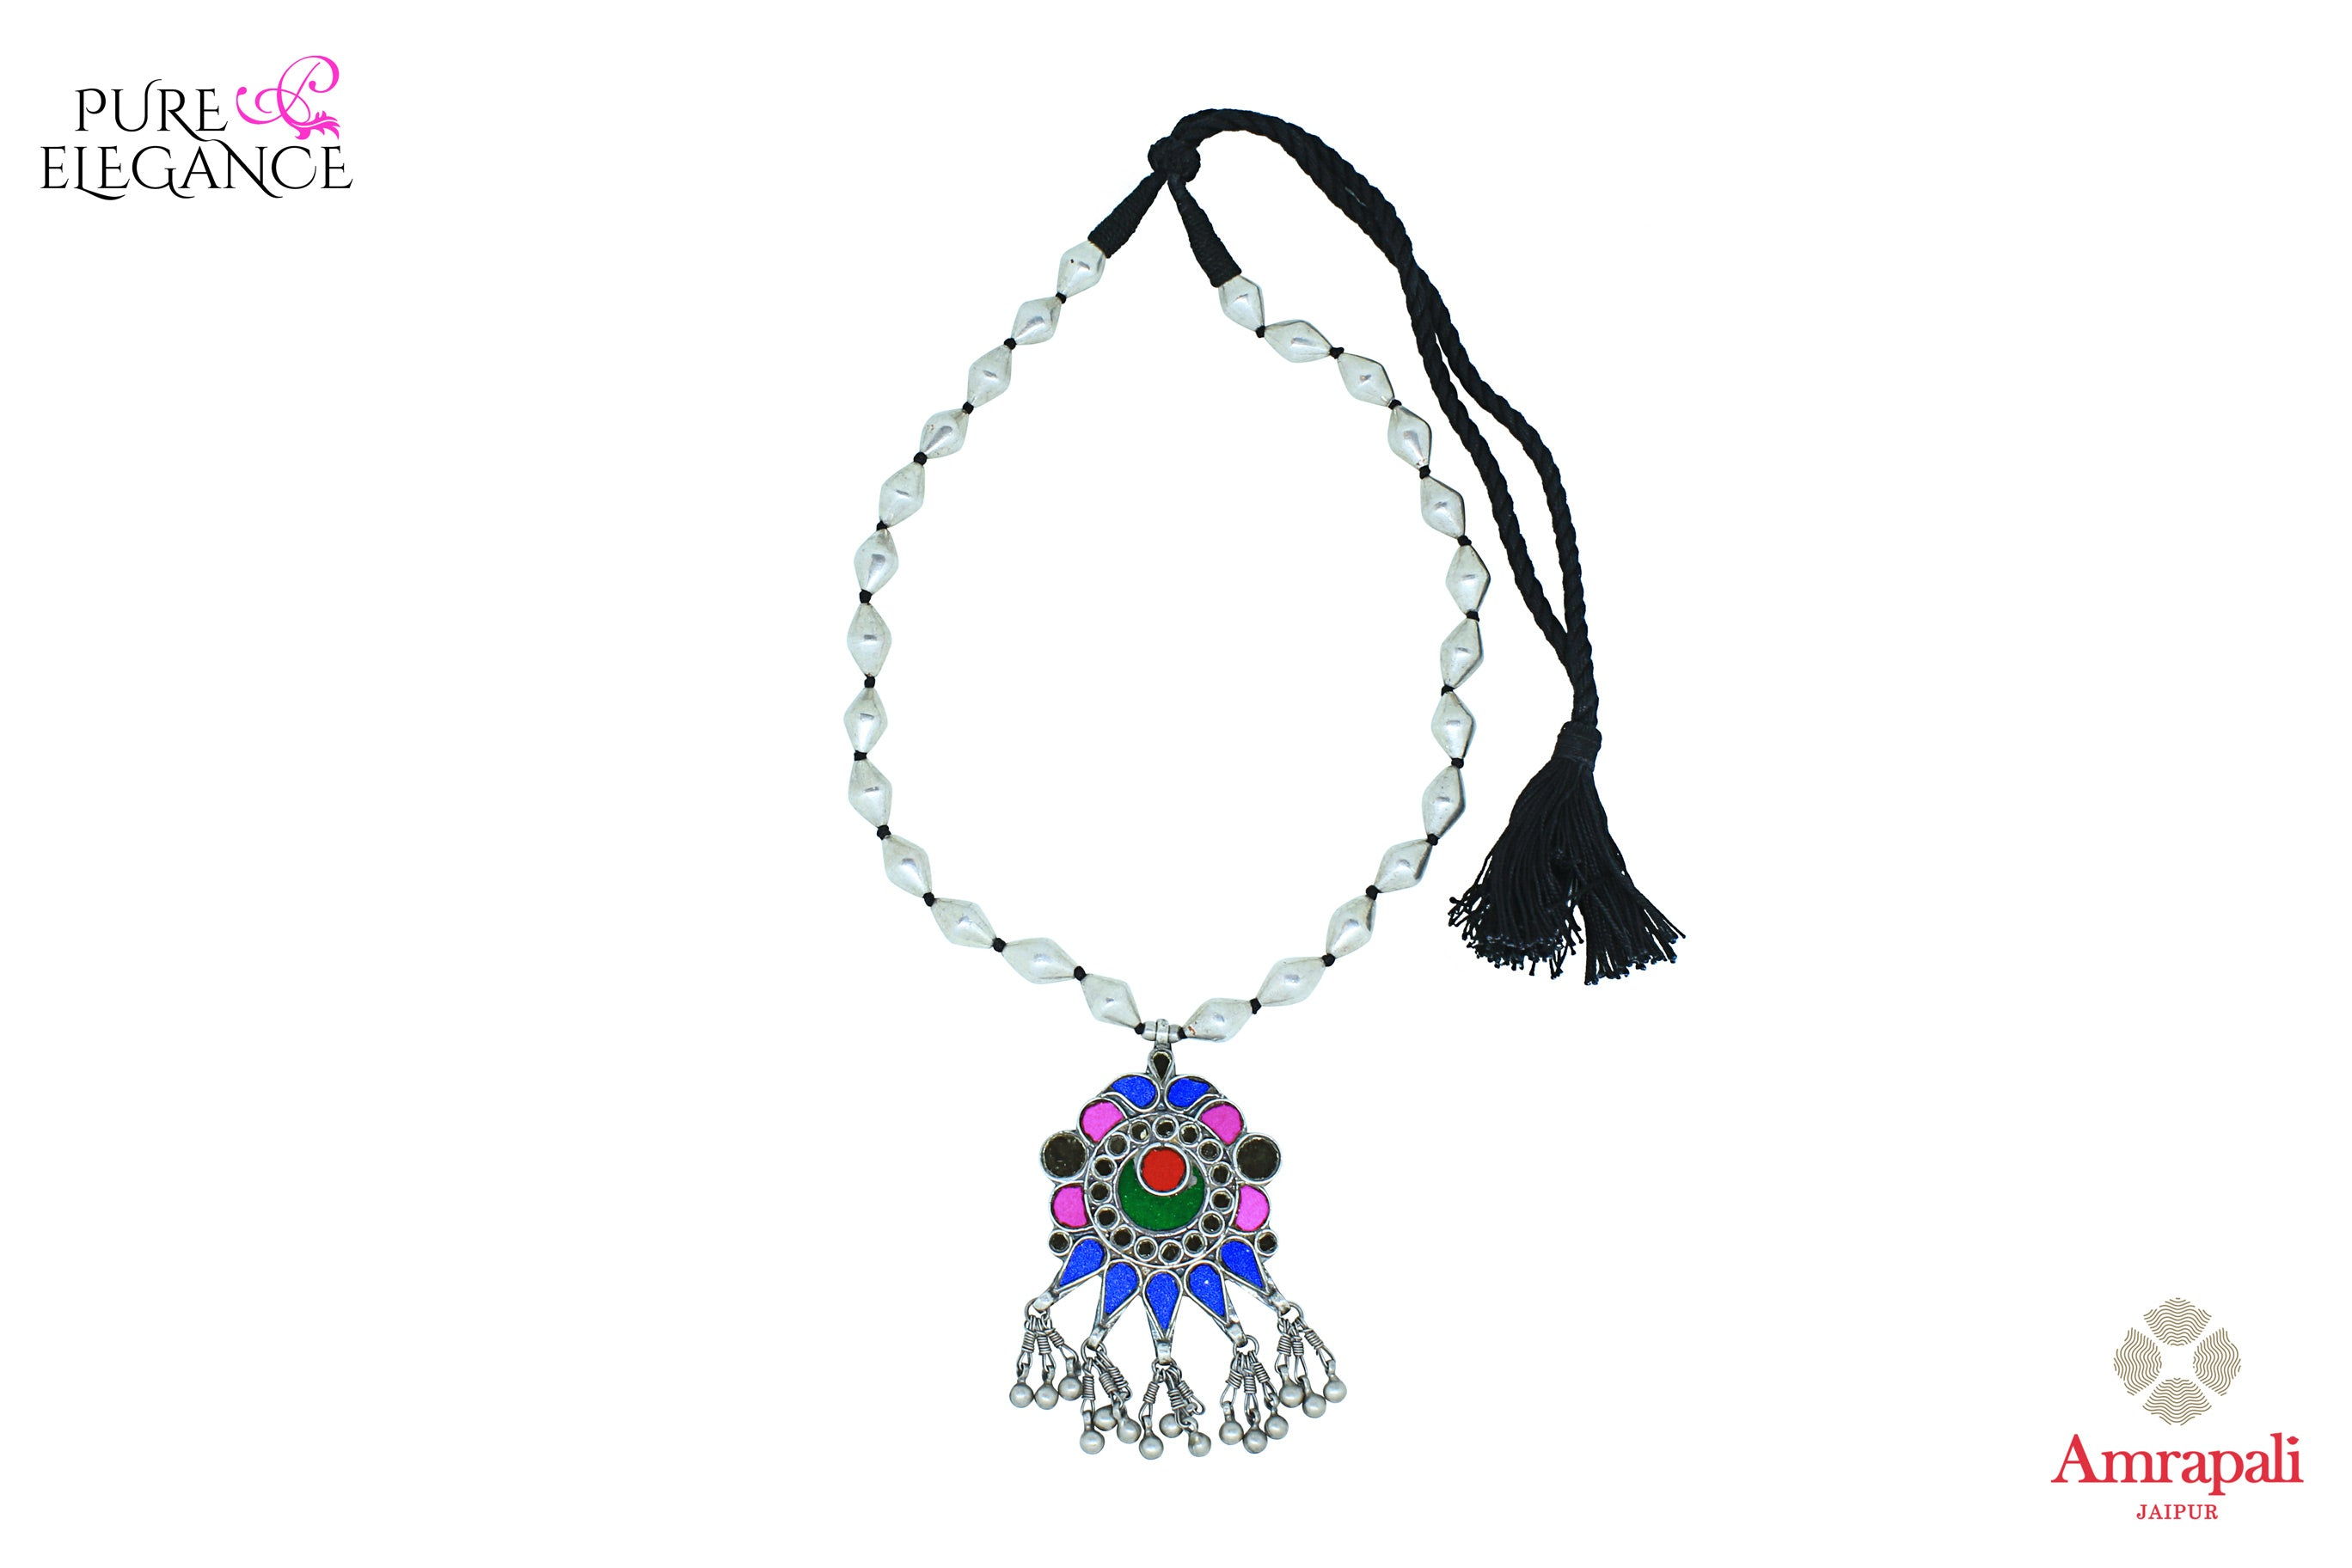 Buy silver dholki thread necklace online in USA with multicolor glass pendant. Get your hands on an alluring range of Indian silver necklaces from Amrapali in USA. Add extra edge to your ethnic look with beautiful silver gold plated jewelry available at Pure Elegance Indian fashion store in USA.-front view